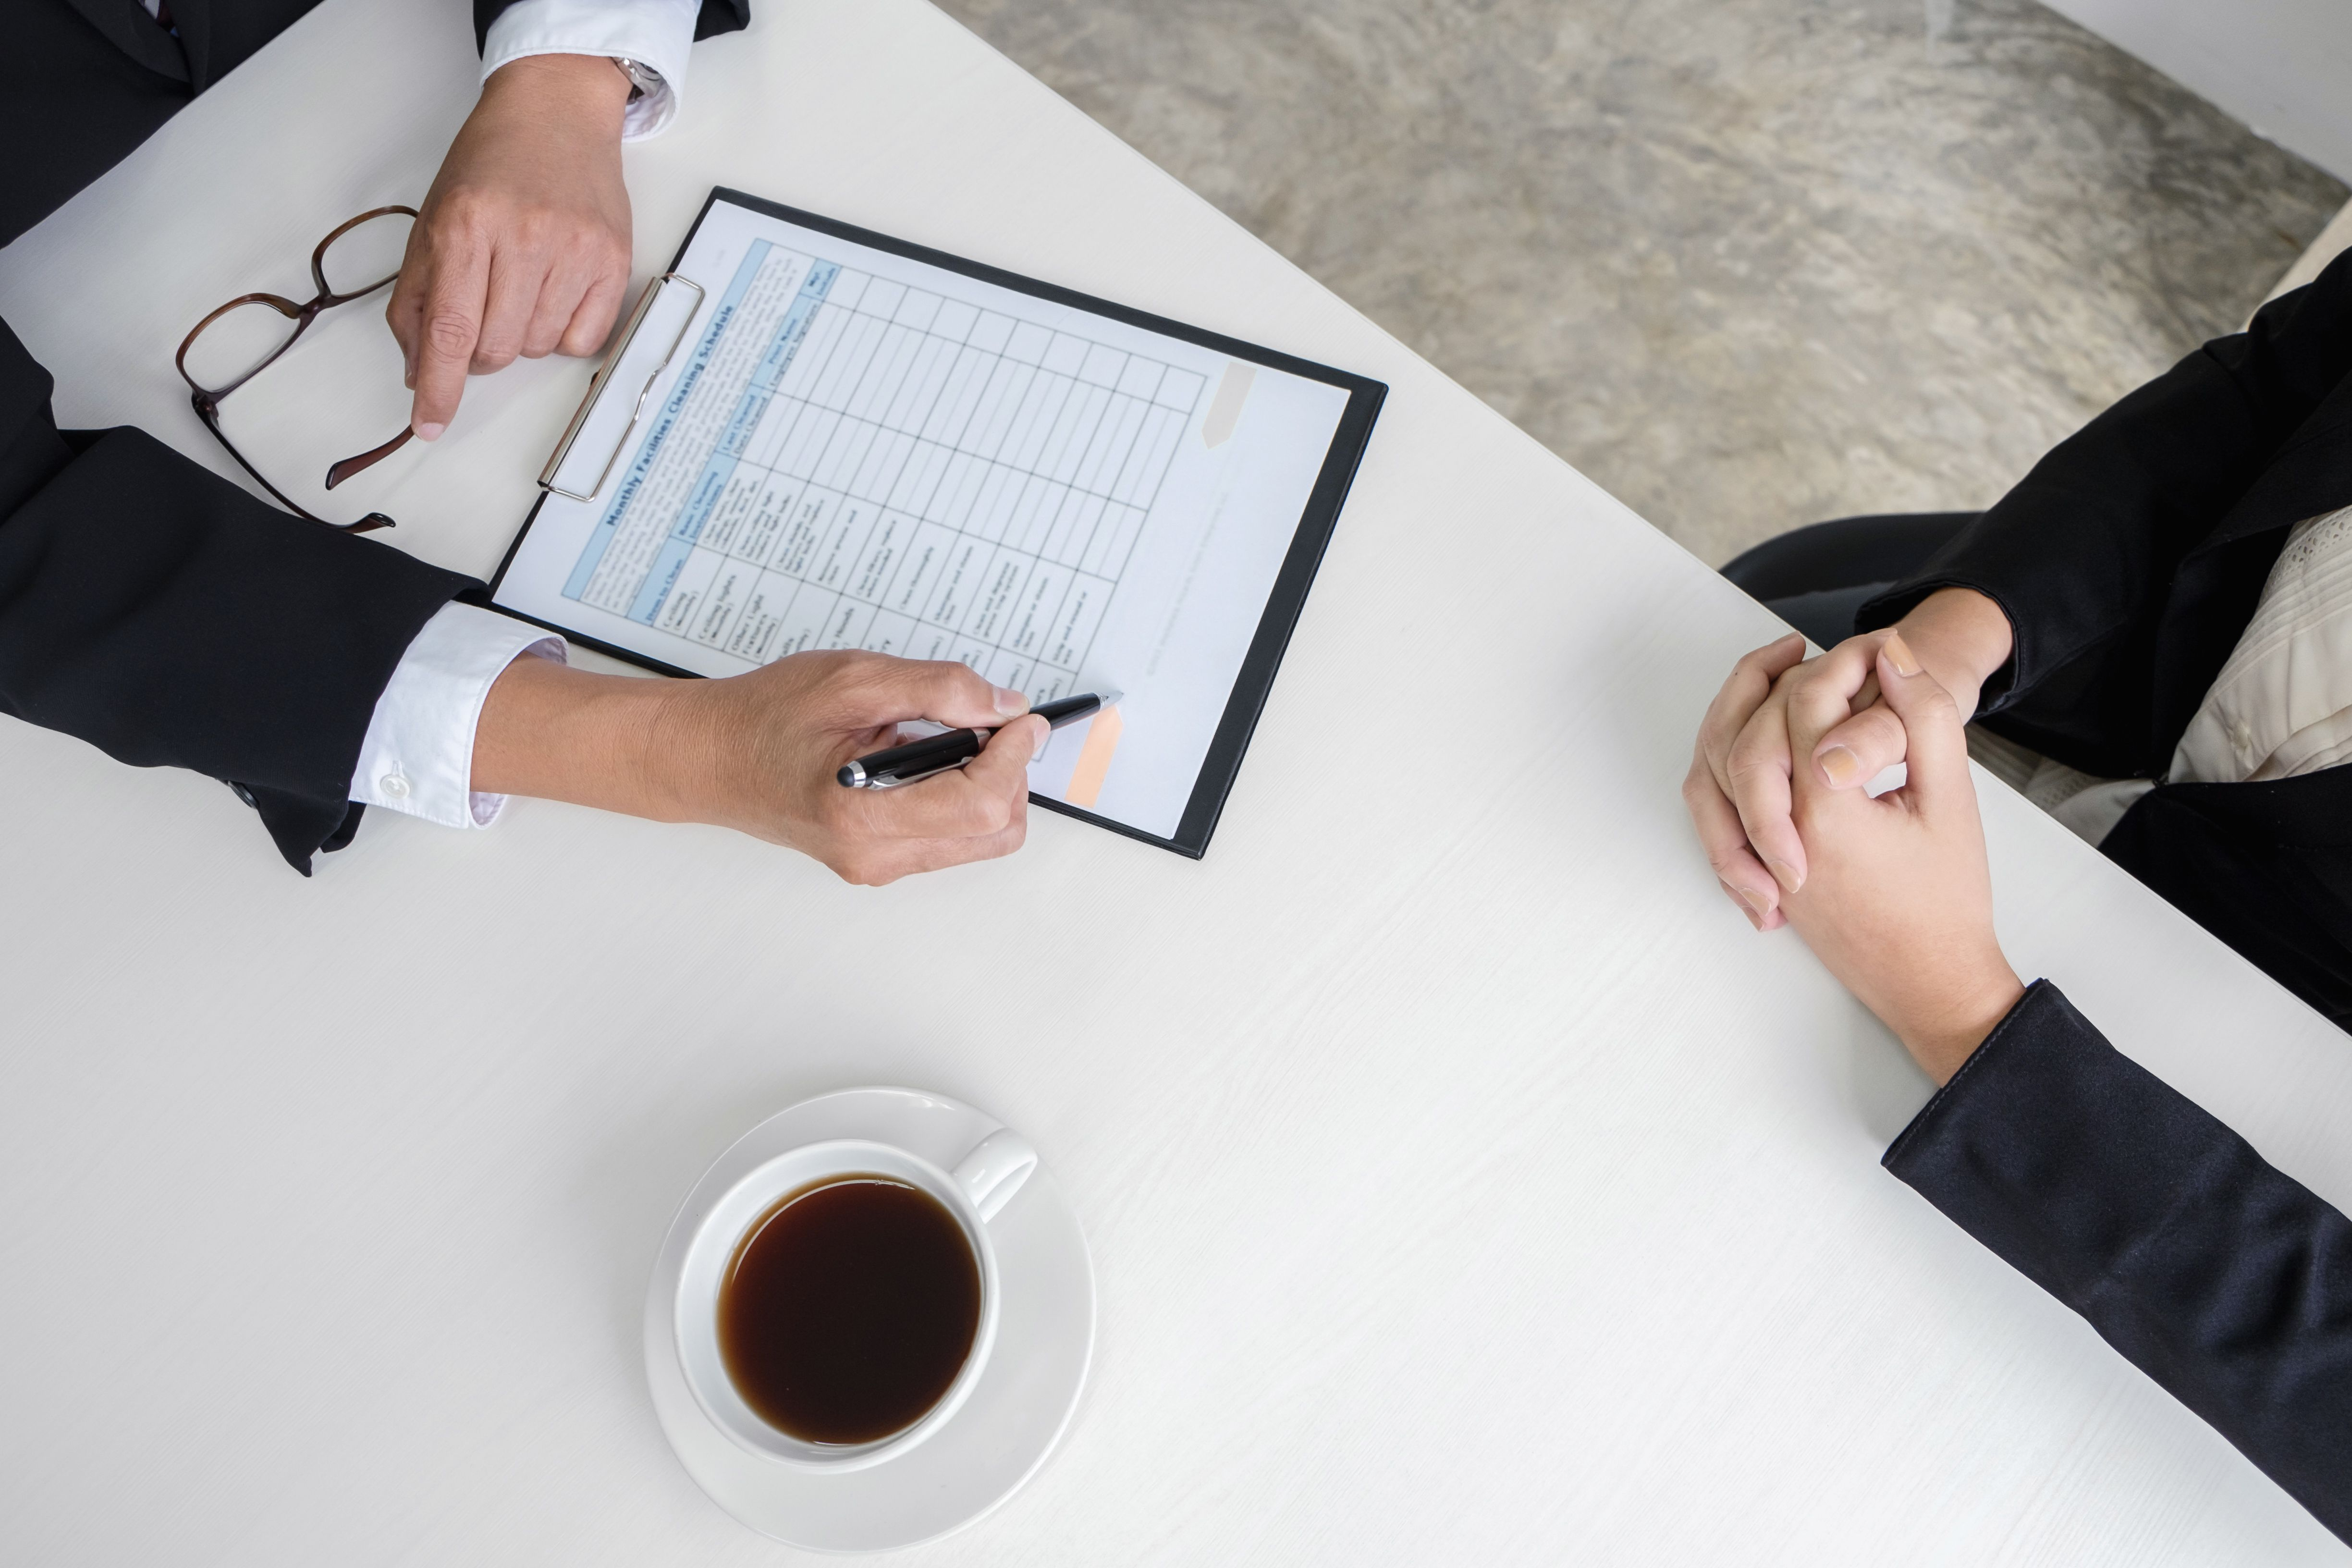 Terms To Include In An Employment Contract